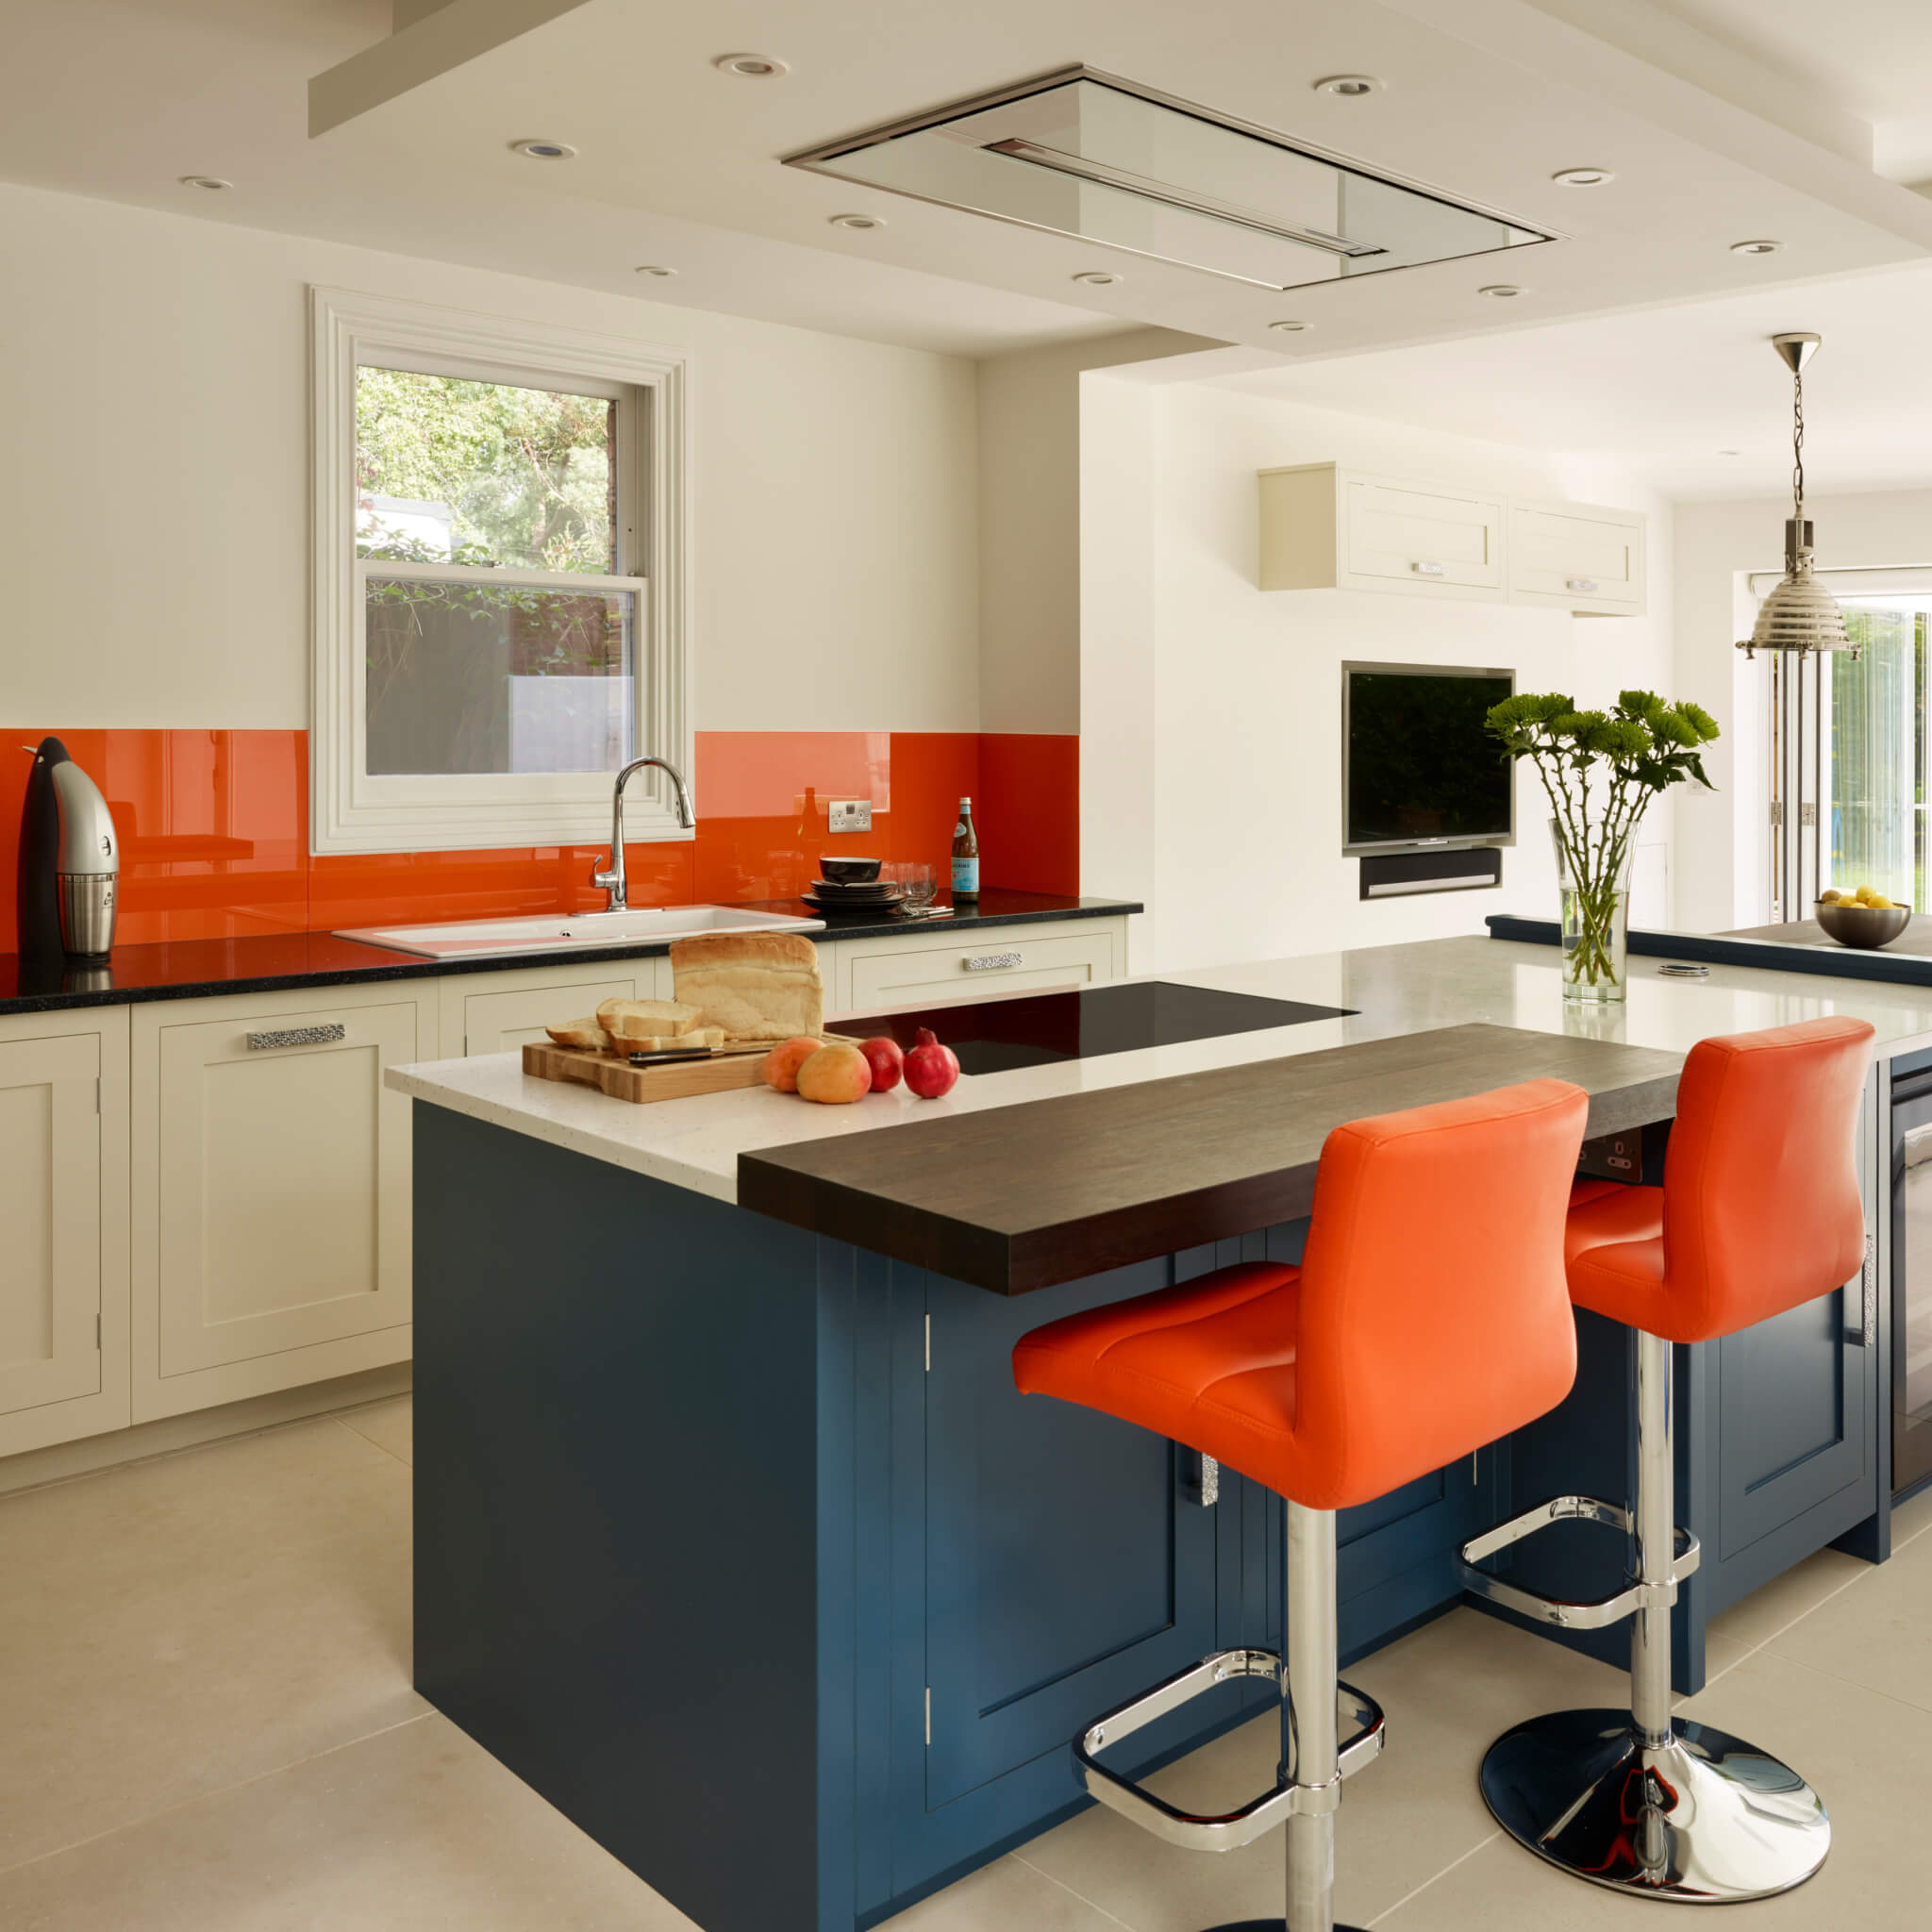 Choosing Worktops For Your New Kitchen